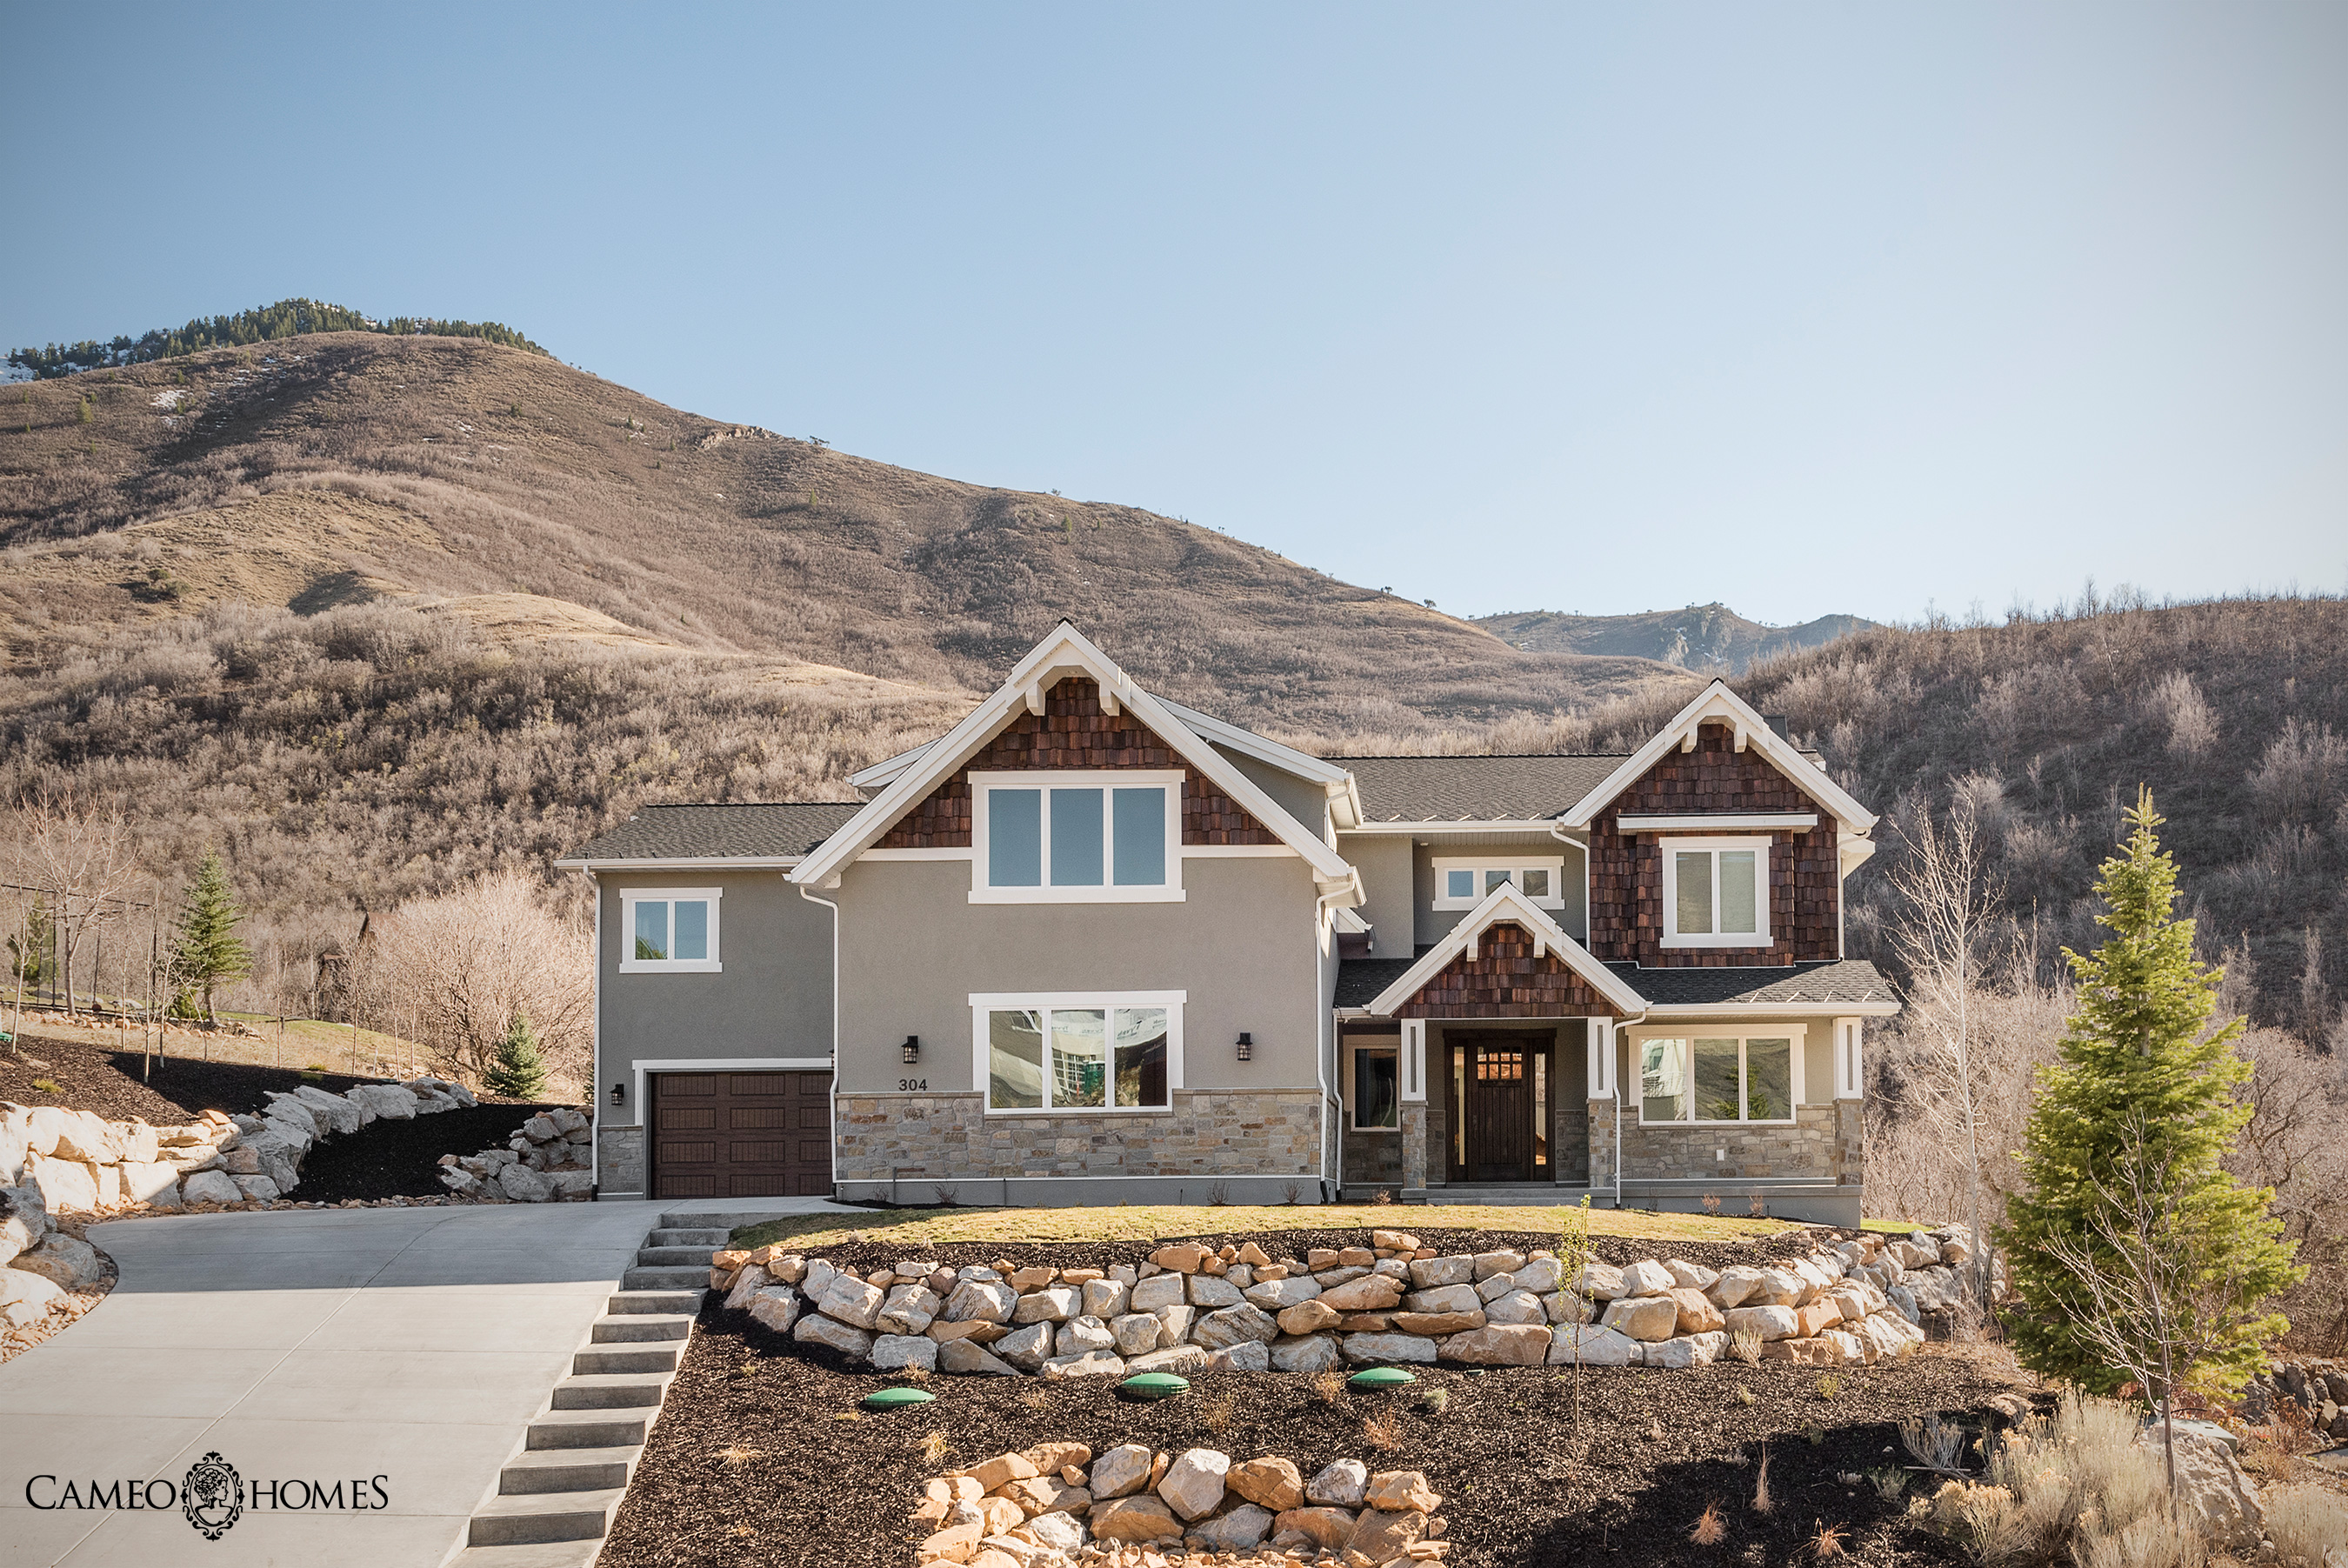 Designer Home Interiors Utah Living In Style Emigration Canyon Utah A Cameo Life